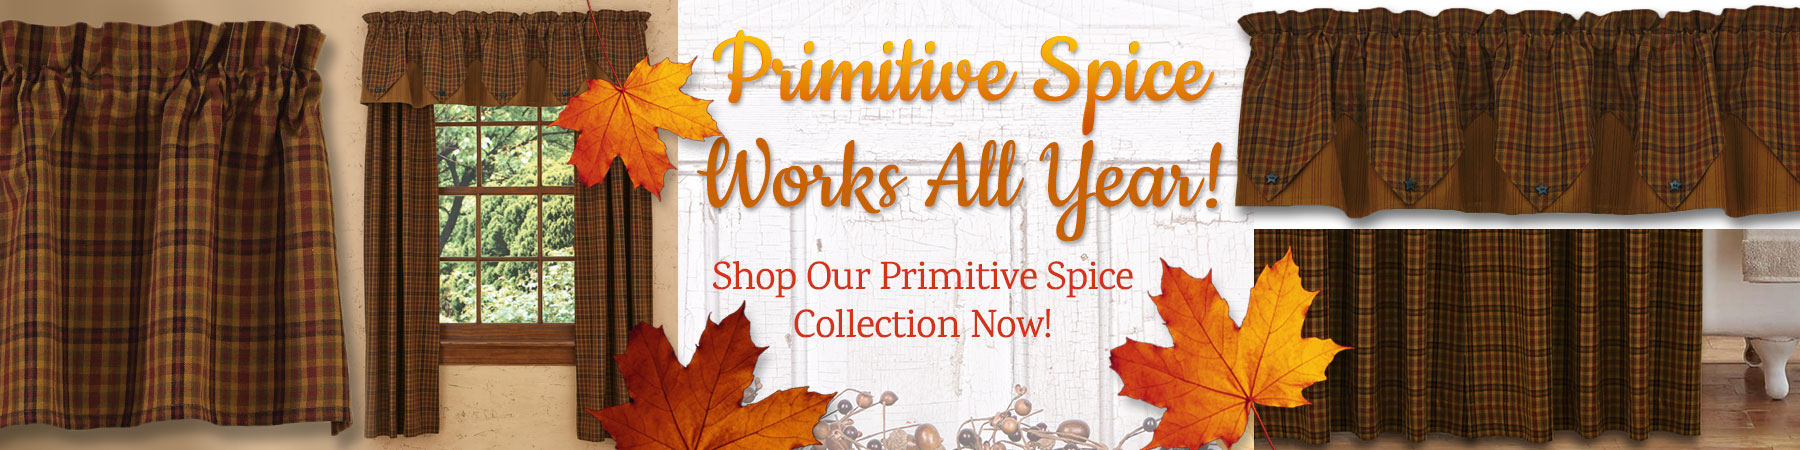 Primitive Spice by Park Designs is perfect for a fall curtain makeover!